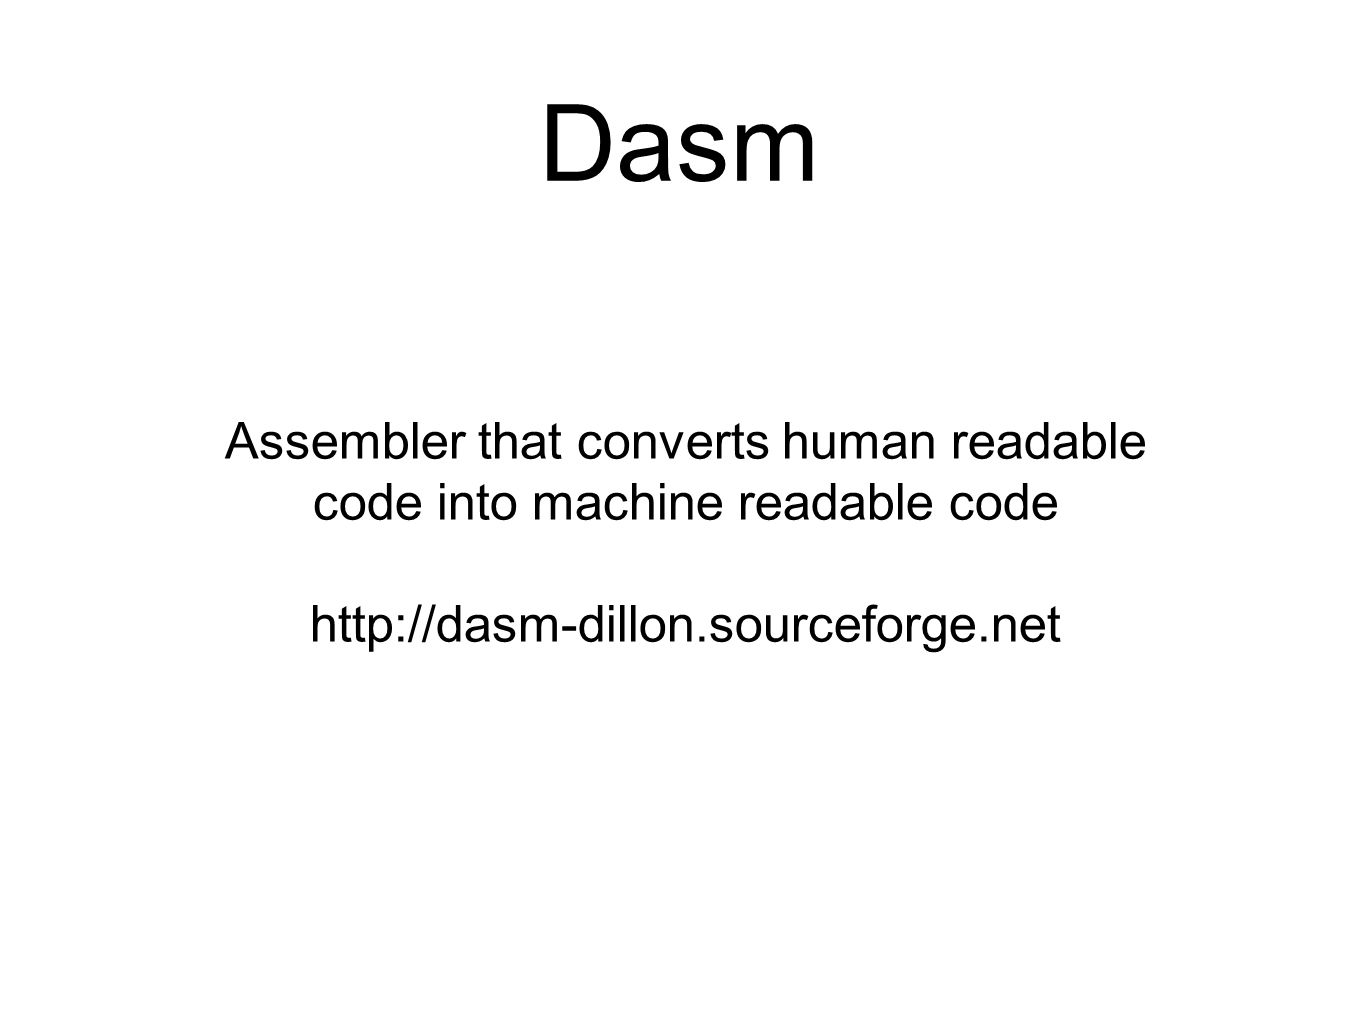 Dasm Assembler that converts human readable